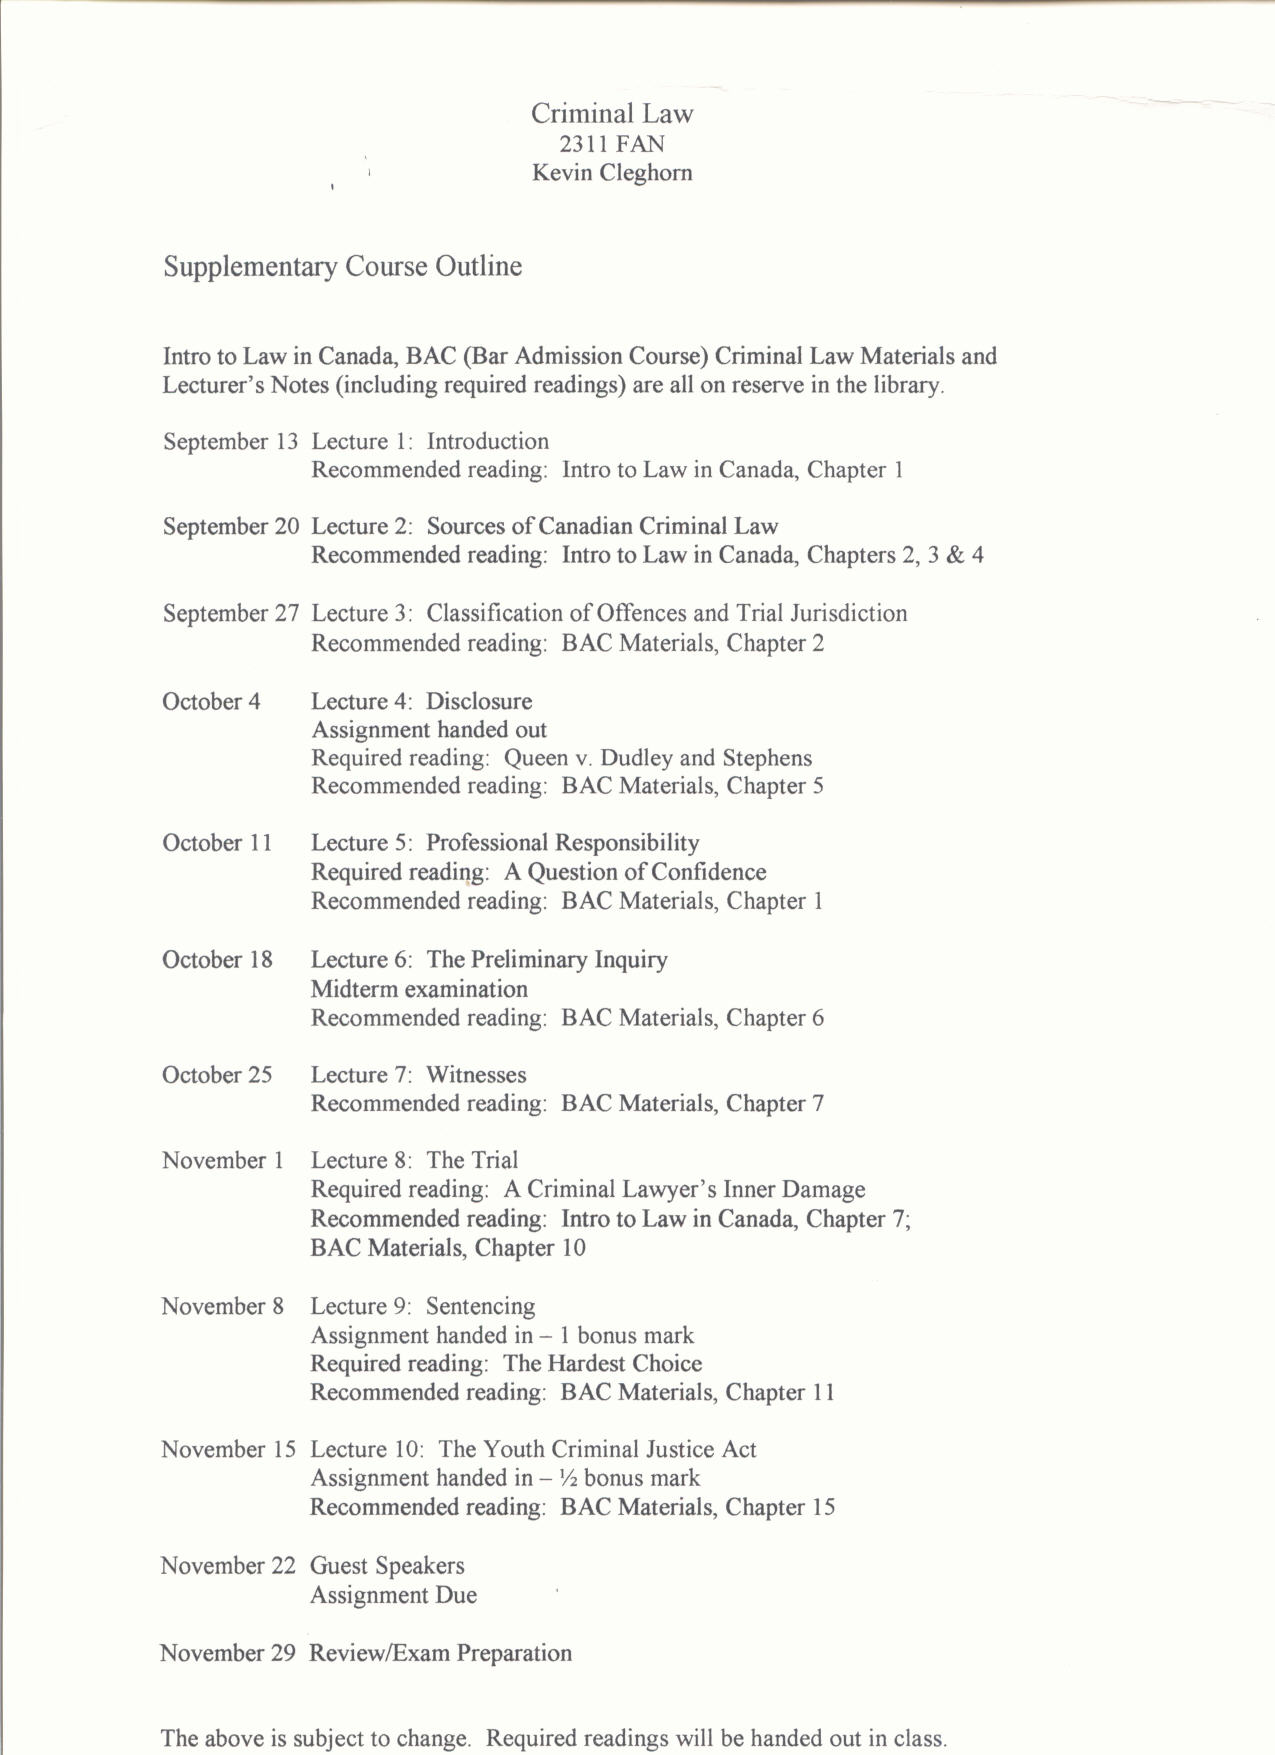 essay on science essay about computer science computer science local government essay outline adorno essay on wagnerpdf reading and review financing state local government chapter